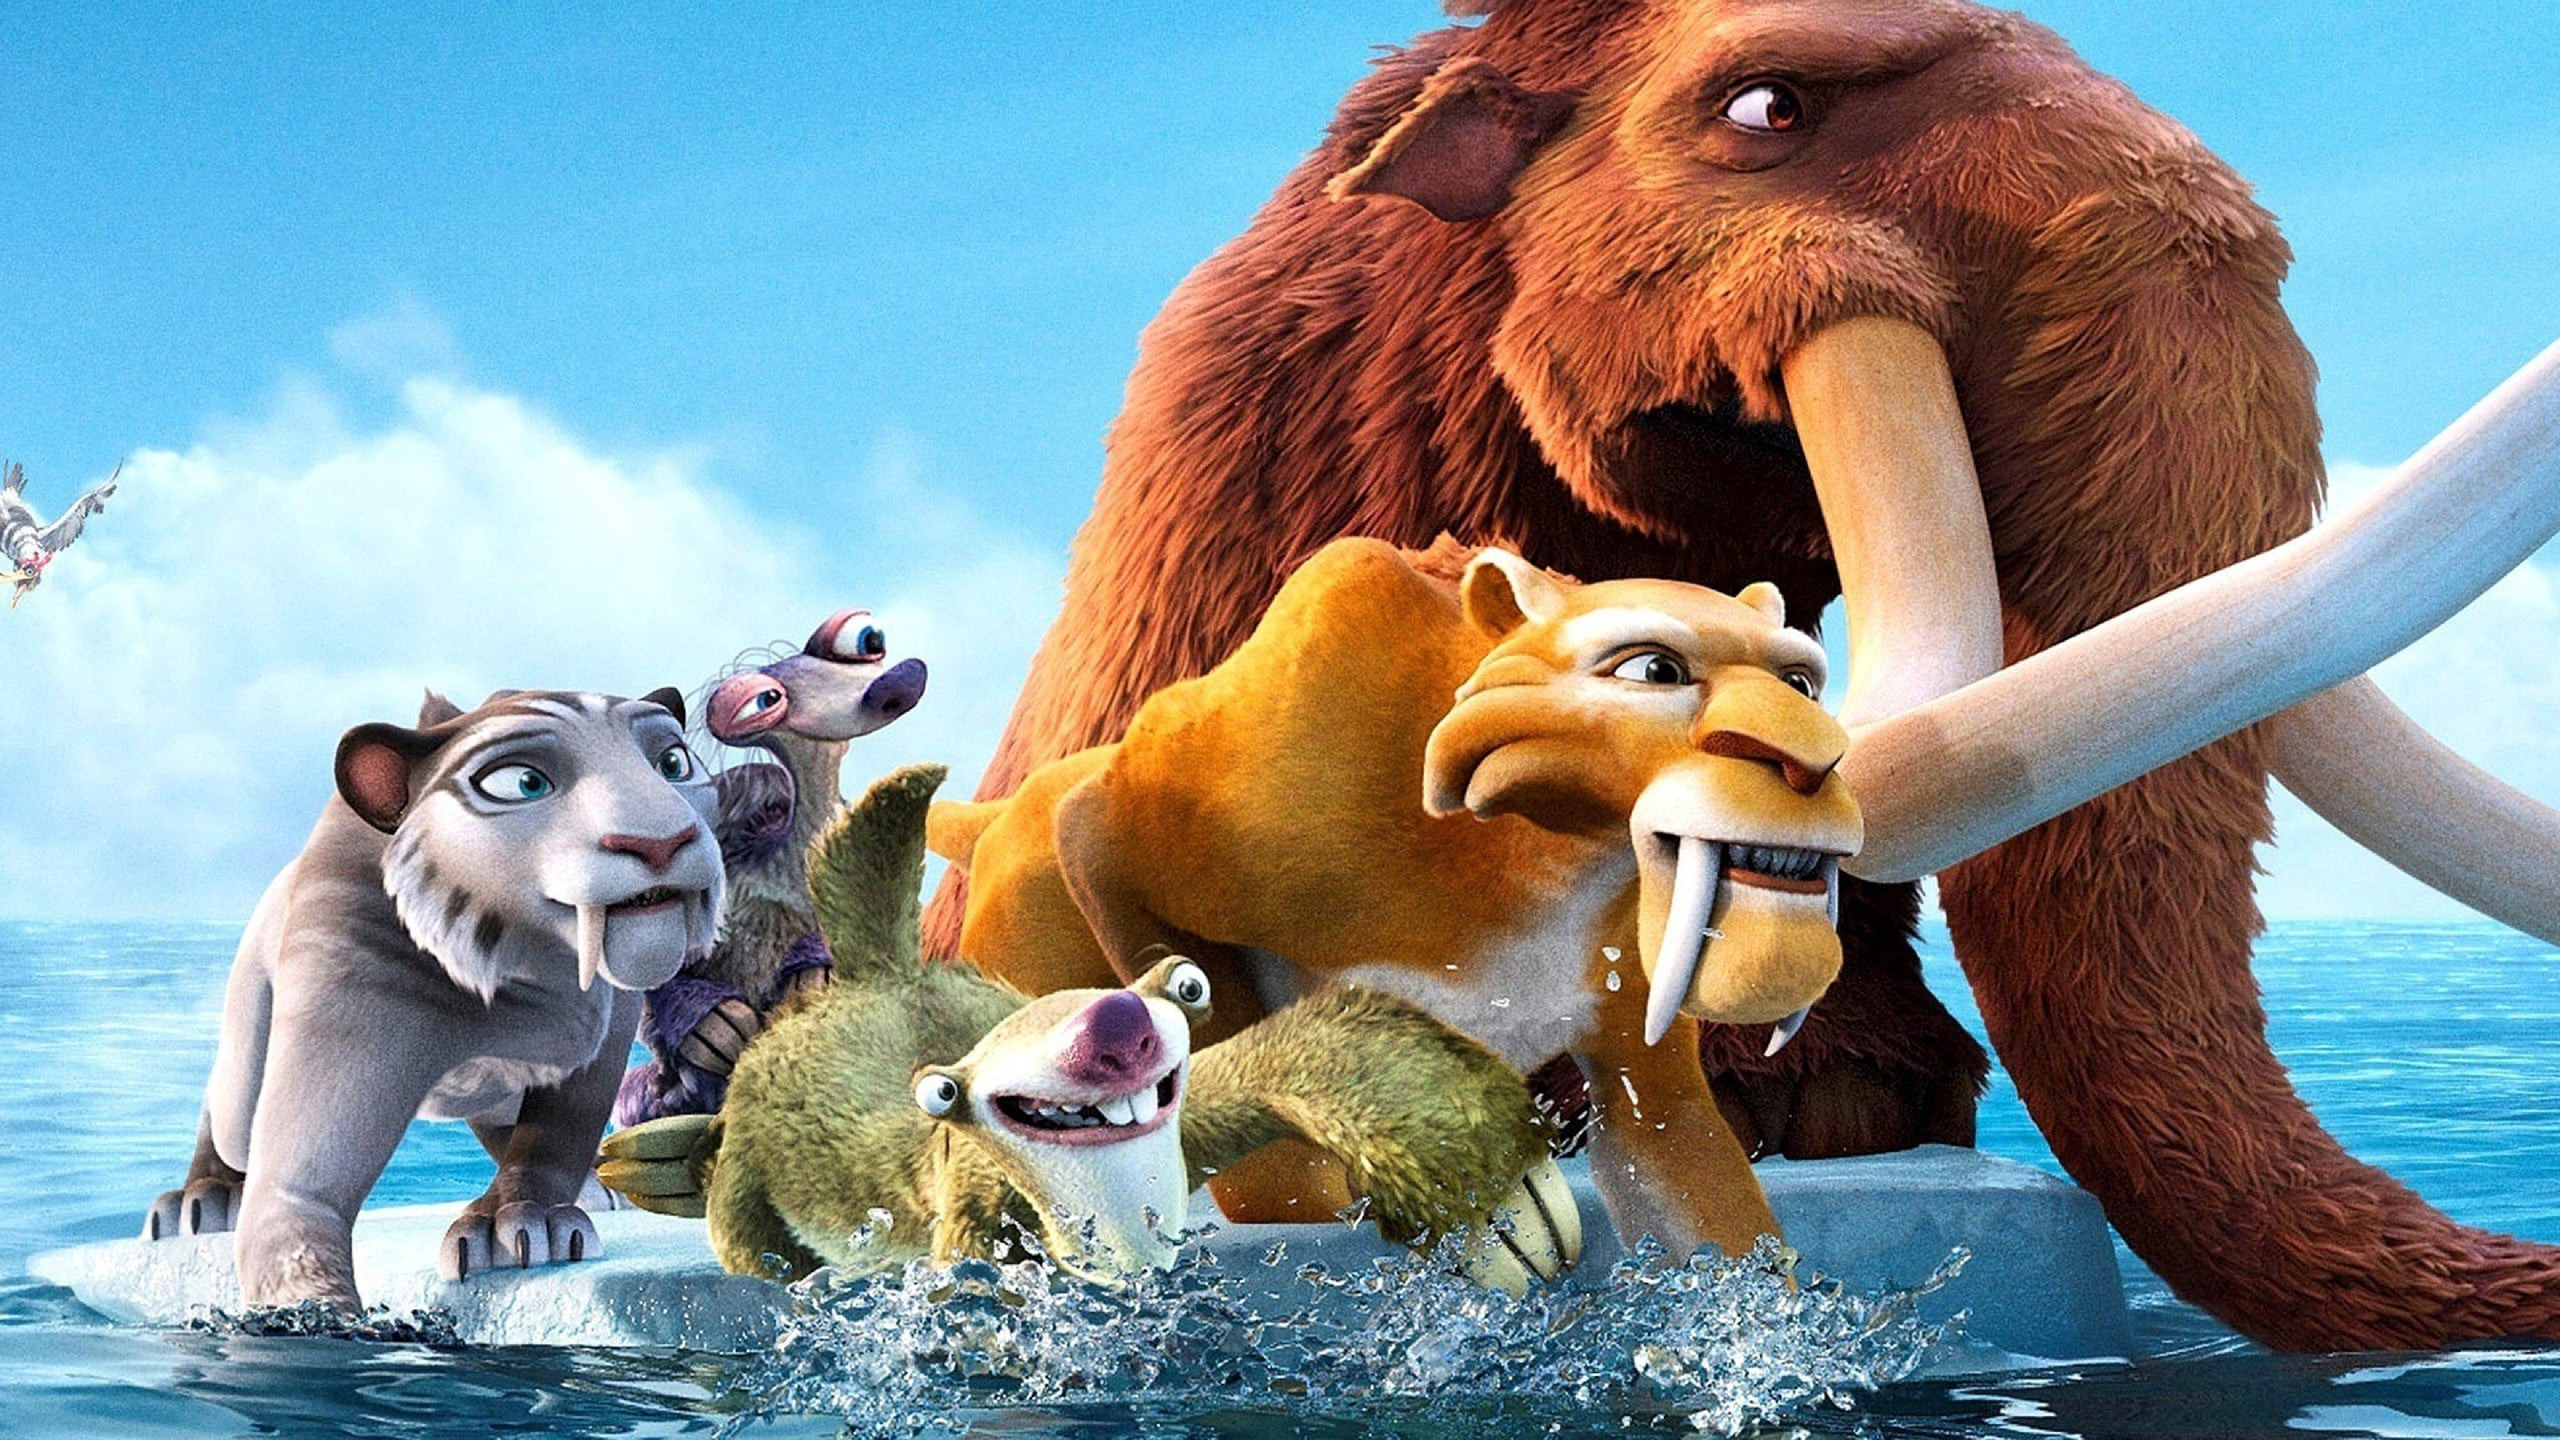 ice age 5 full movie online free 123movies